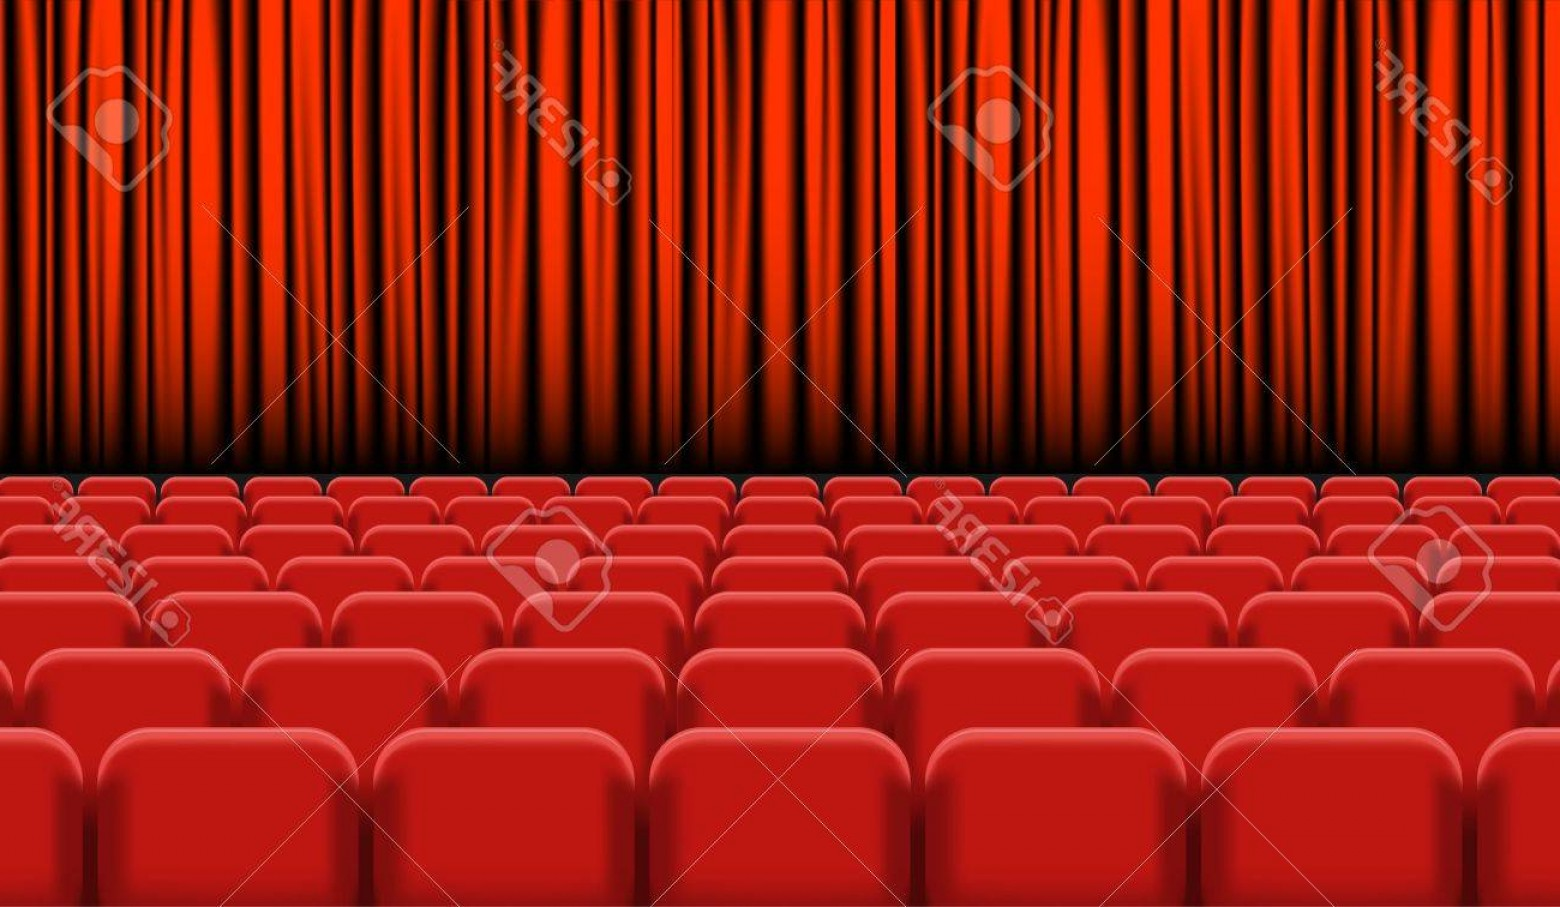 Stage Curtain Vector: Photostock Vector Theater Auditorium With Rows Of Red Seats And Stage With Curtain Vector Illustration